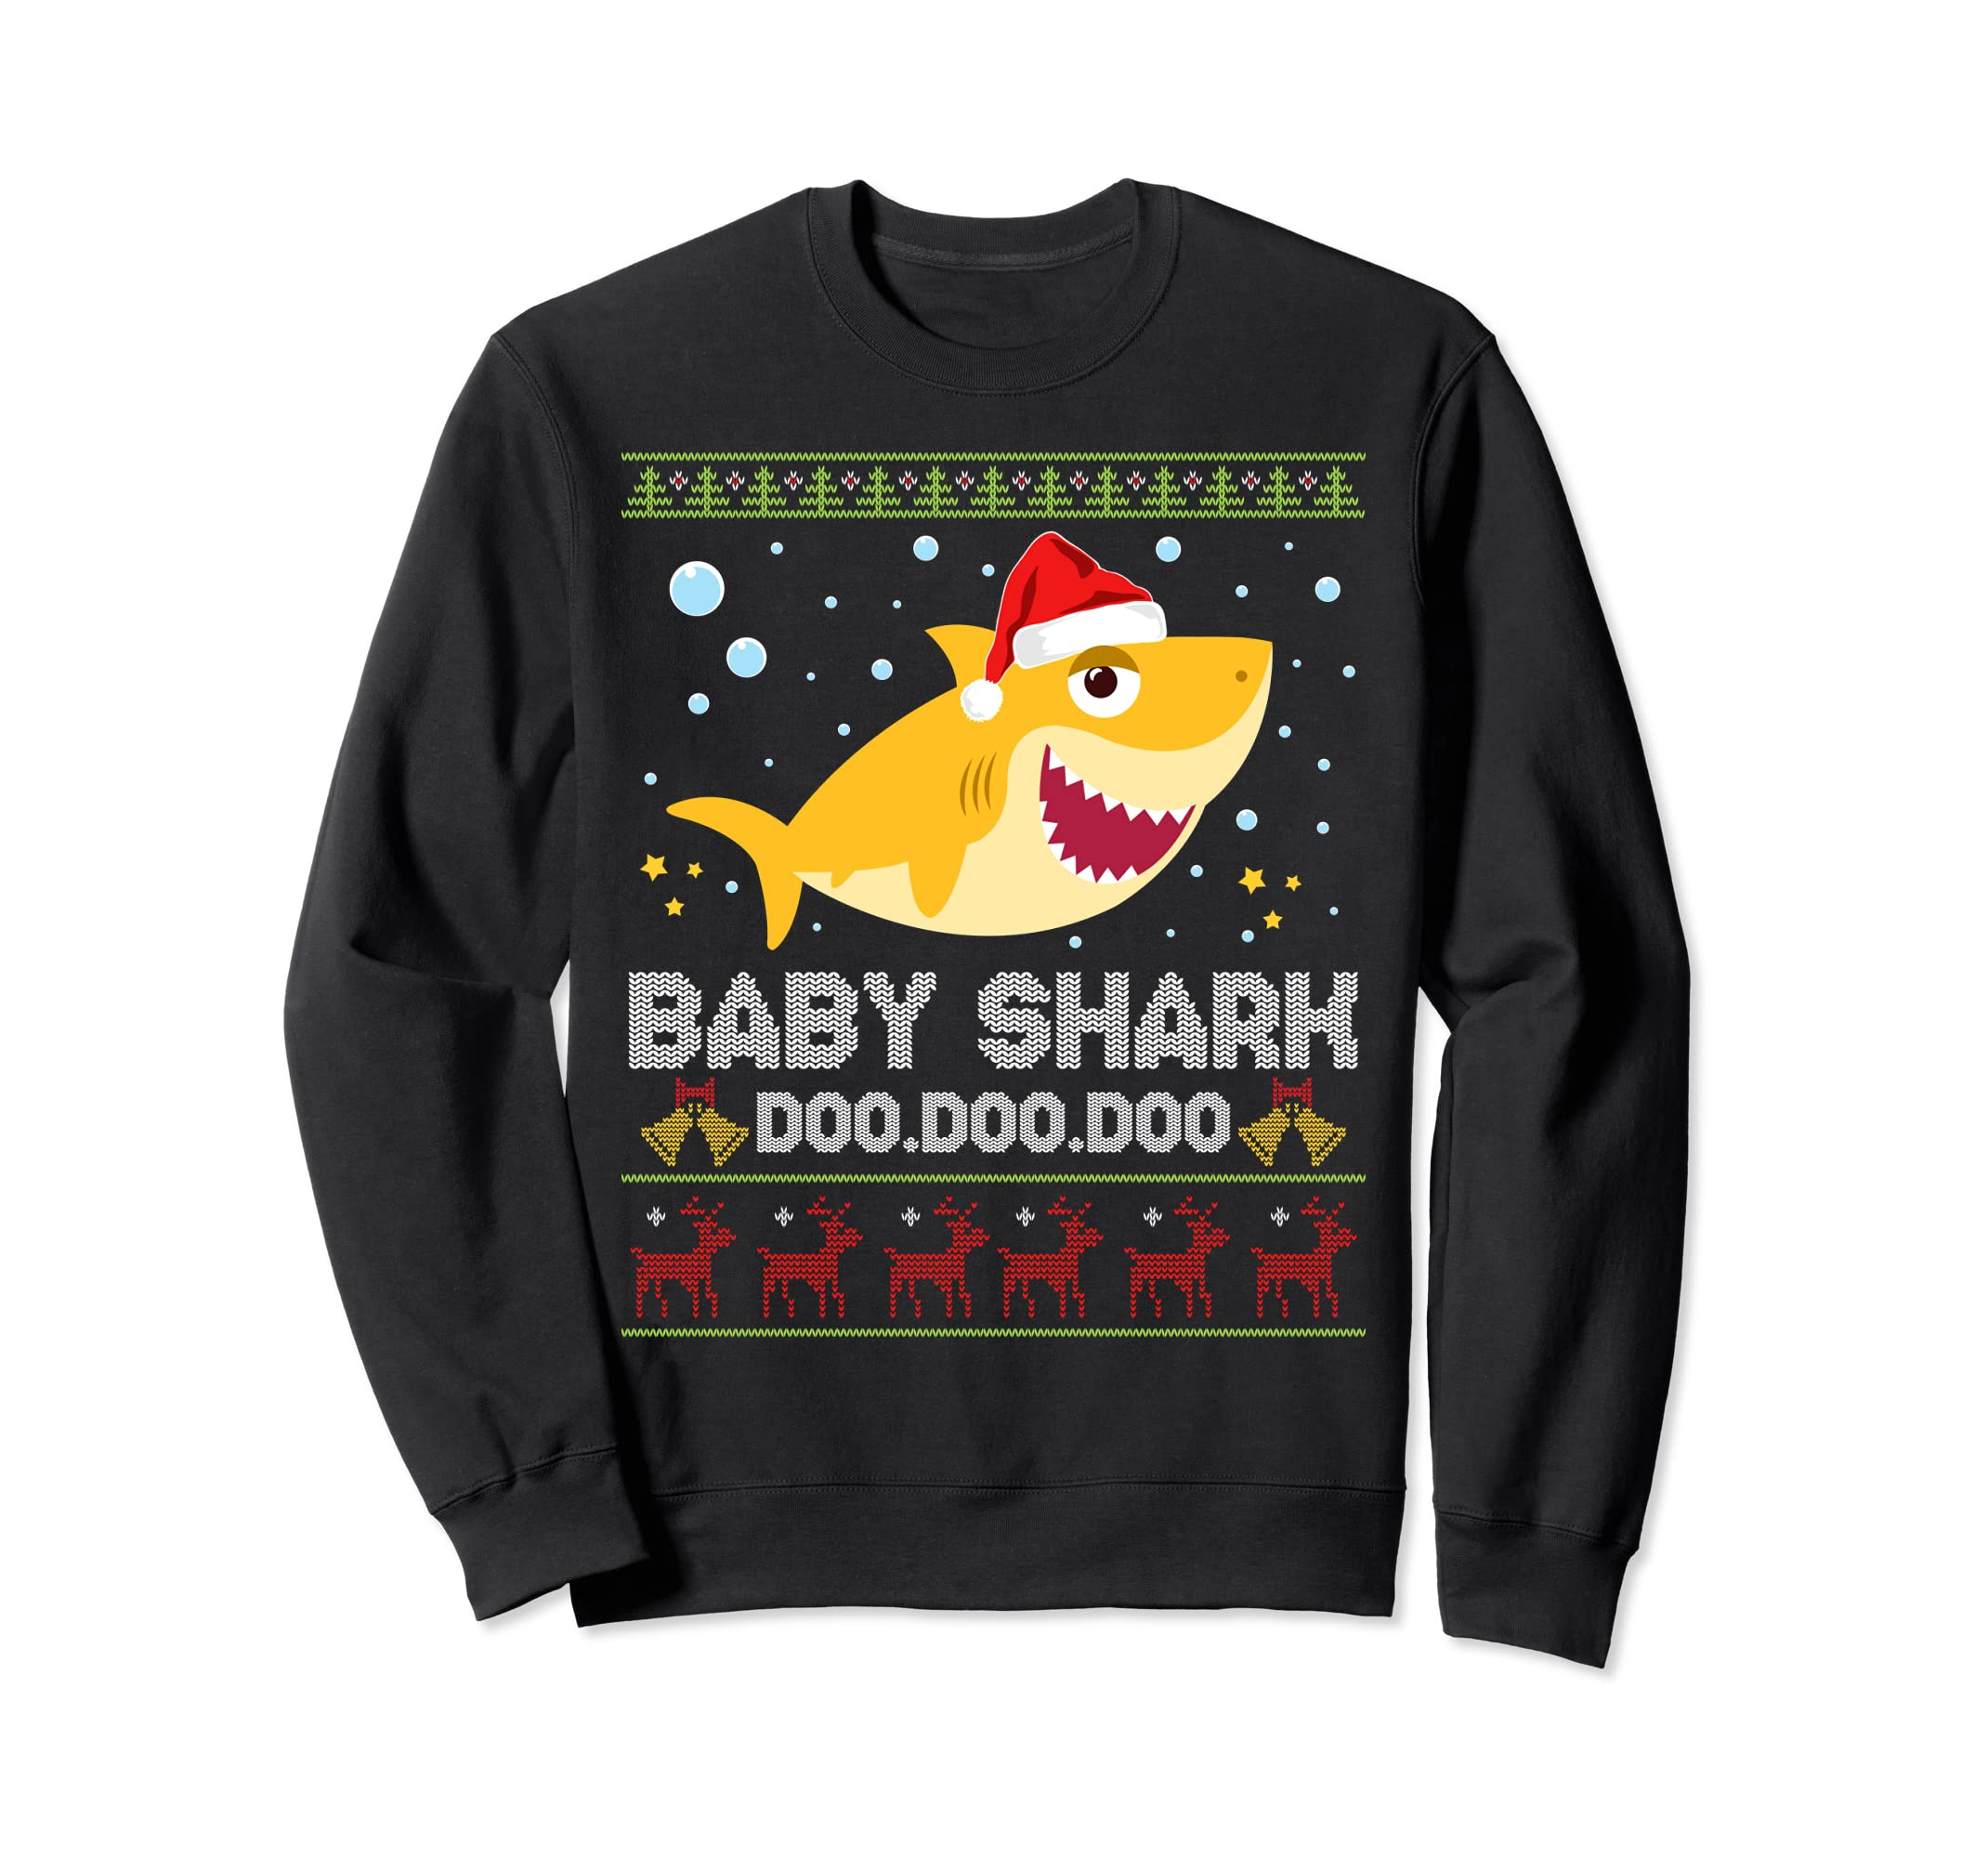 """Christmas sweater with a shark graphic and the words """"Baby shark doo doo doo"""""""